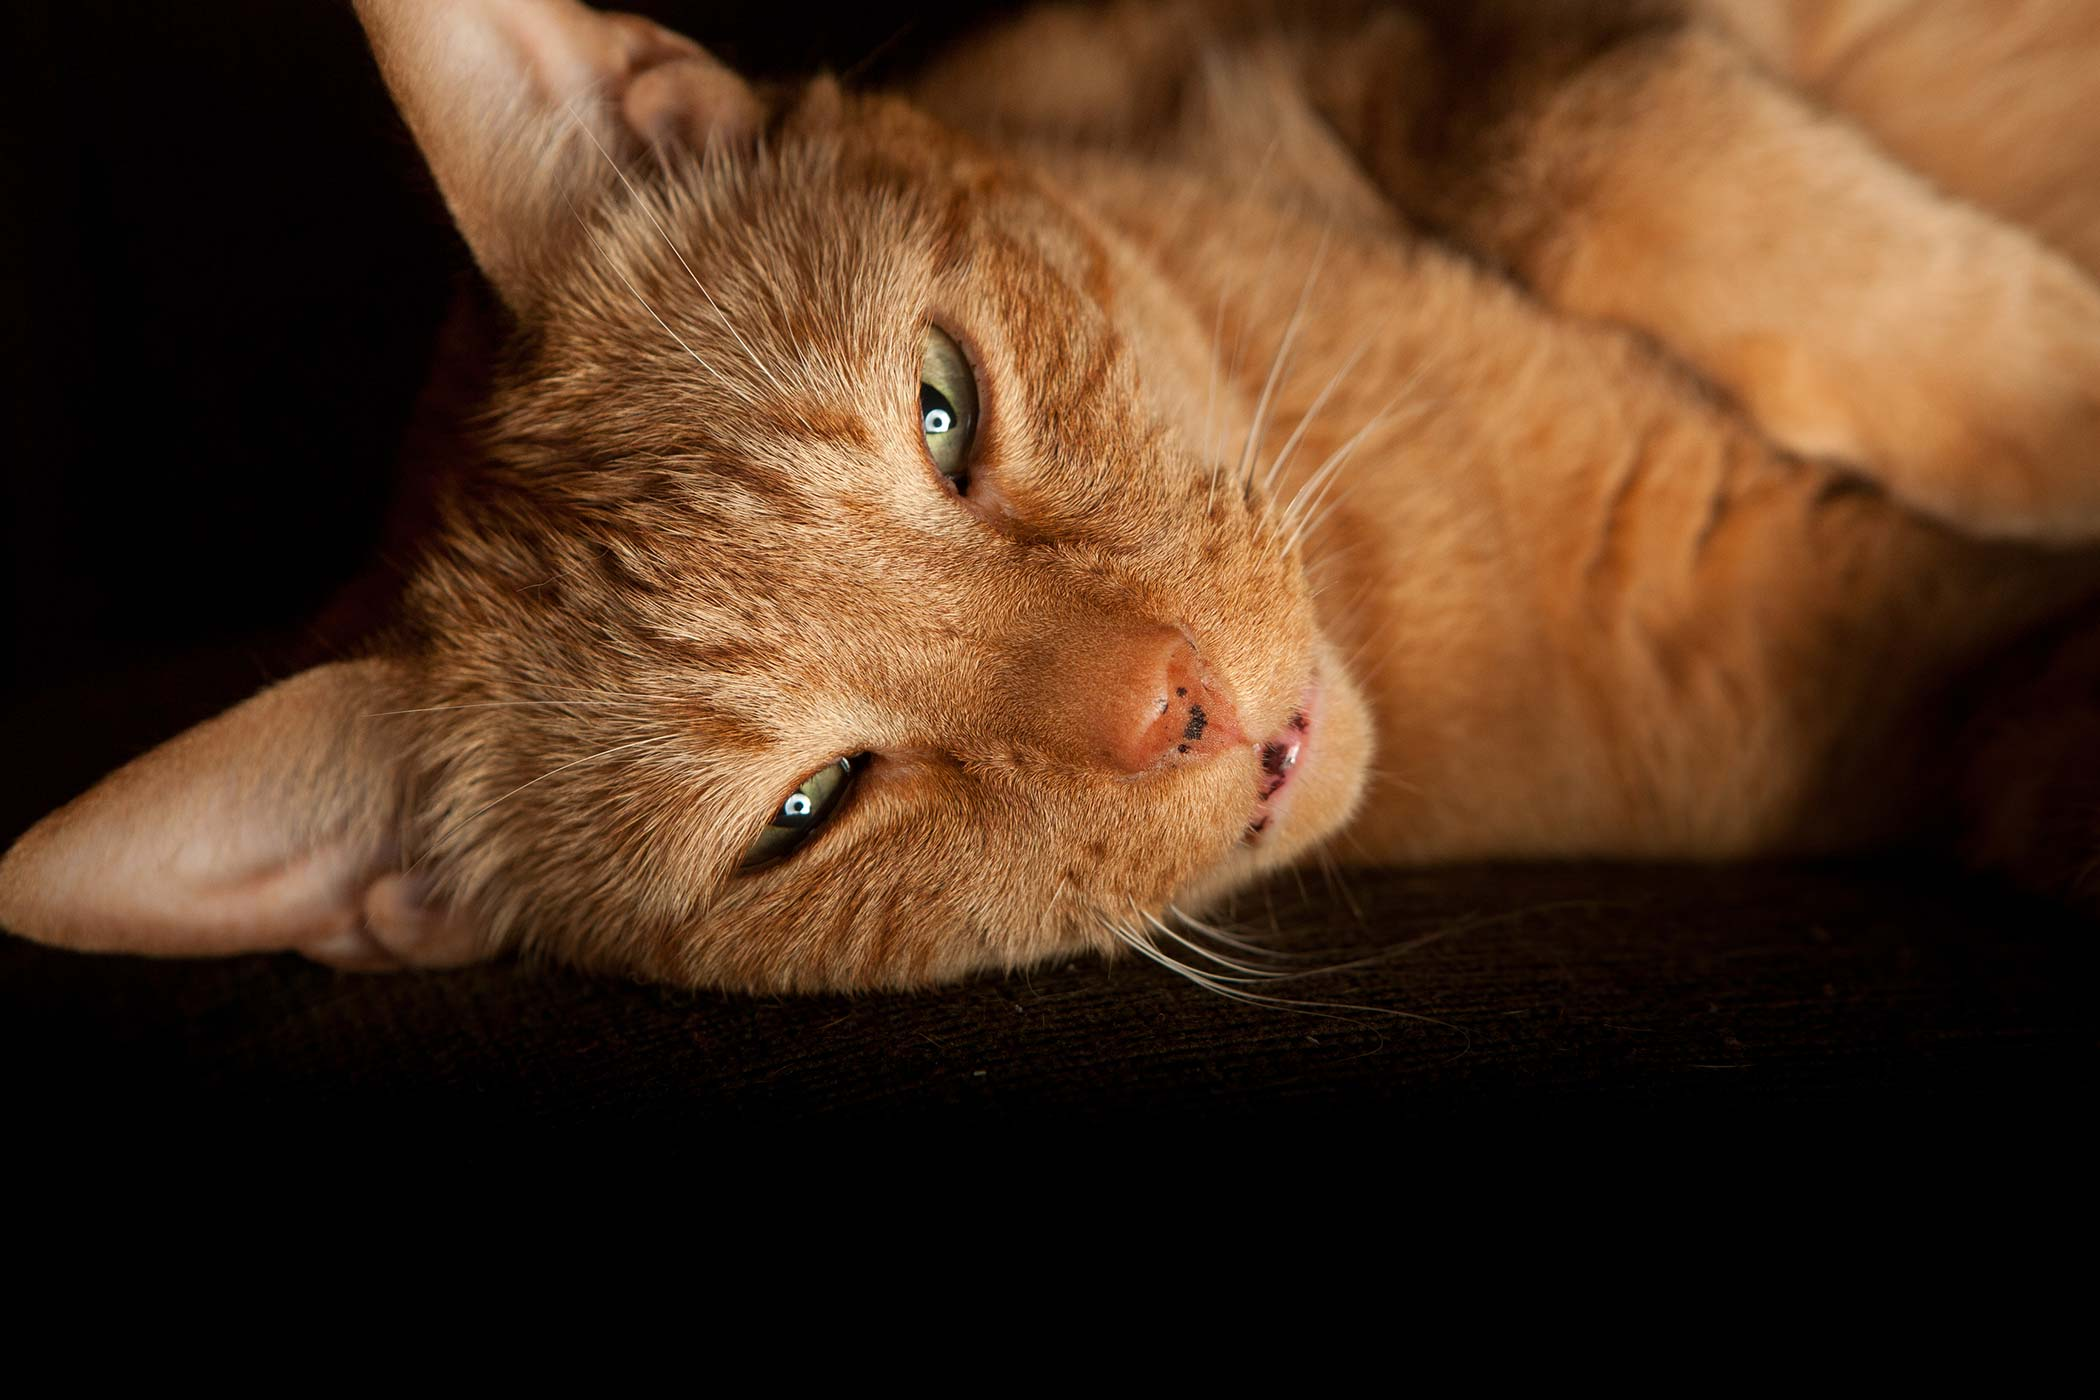 E. Coli Infection in Cats